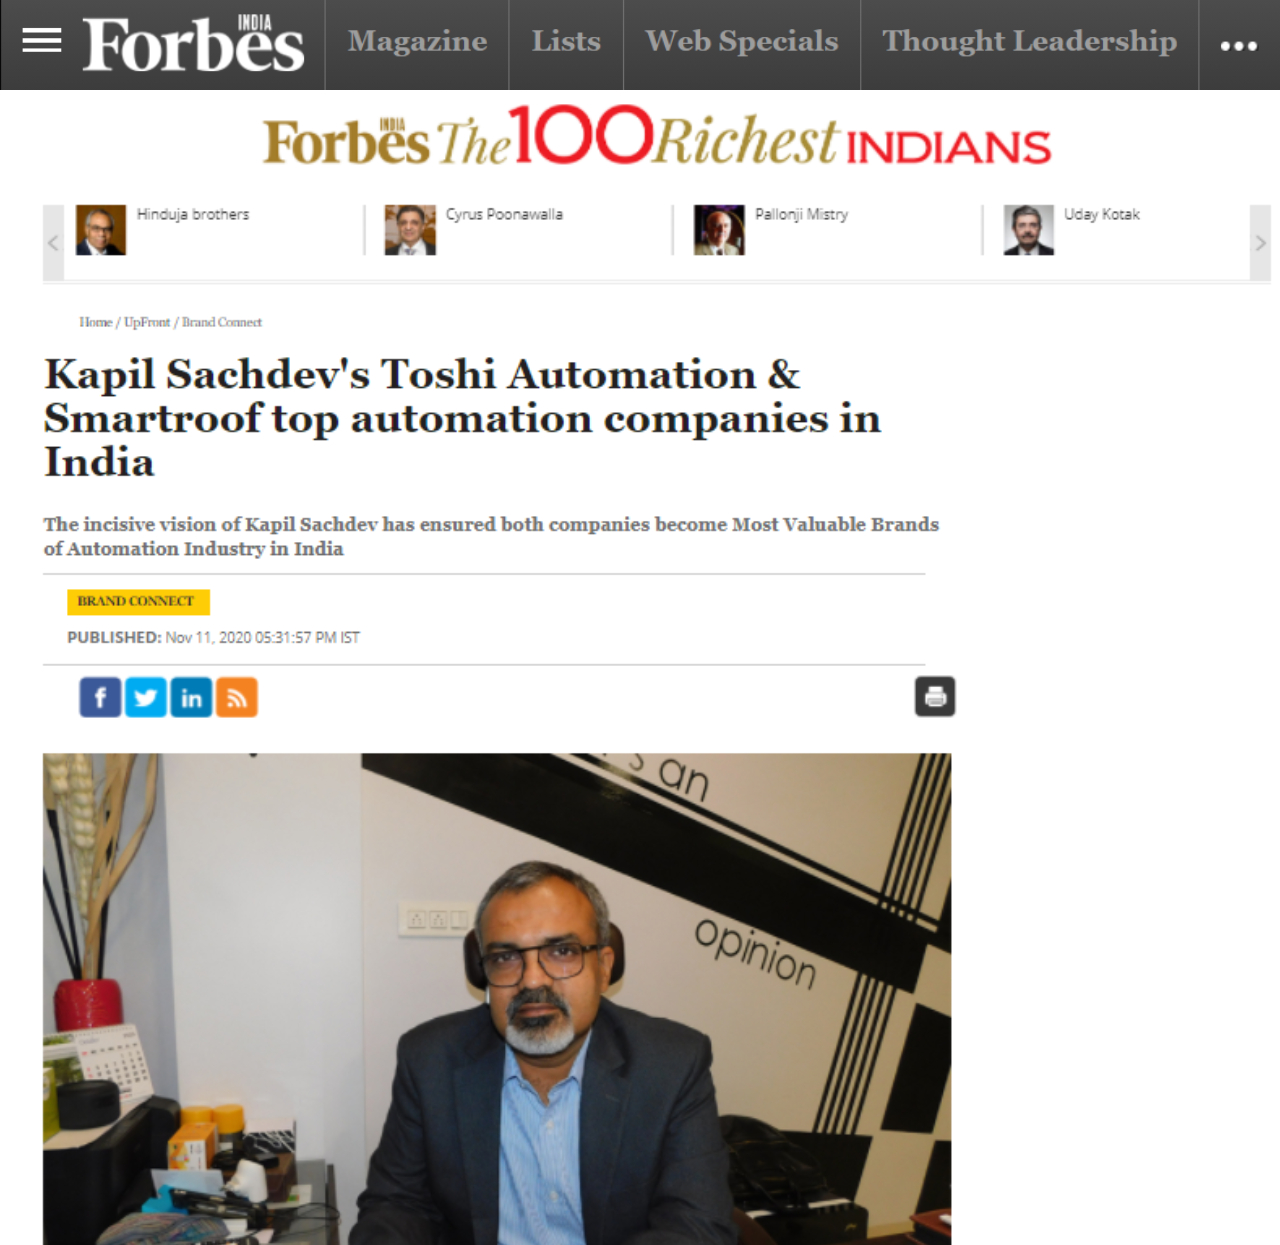 Forbes published an article